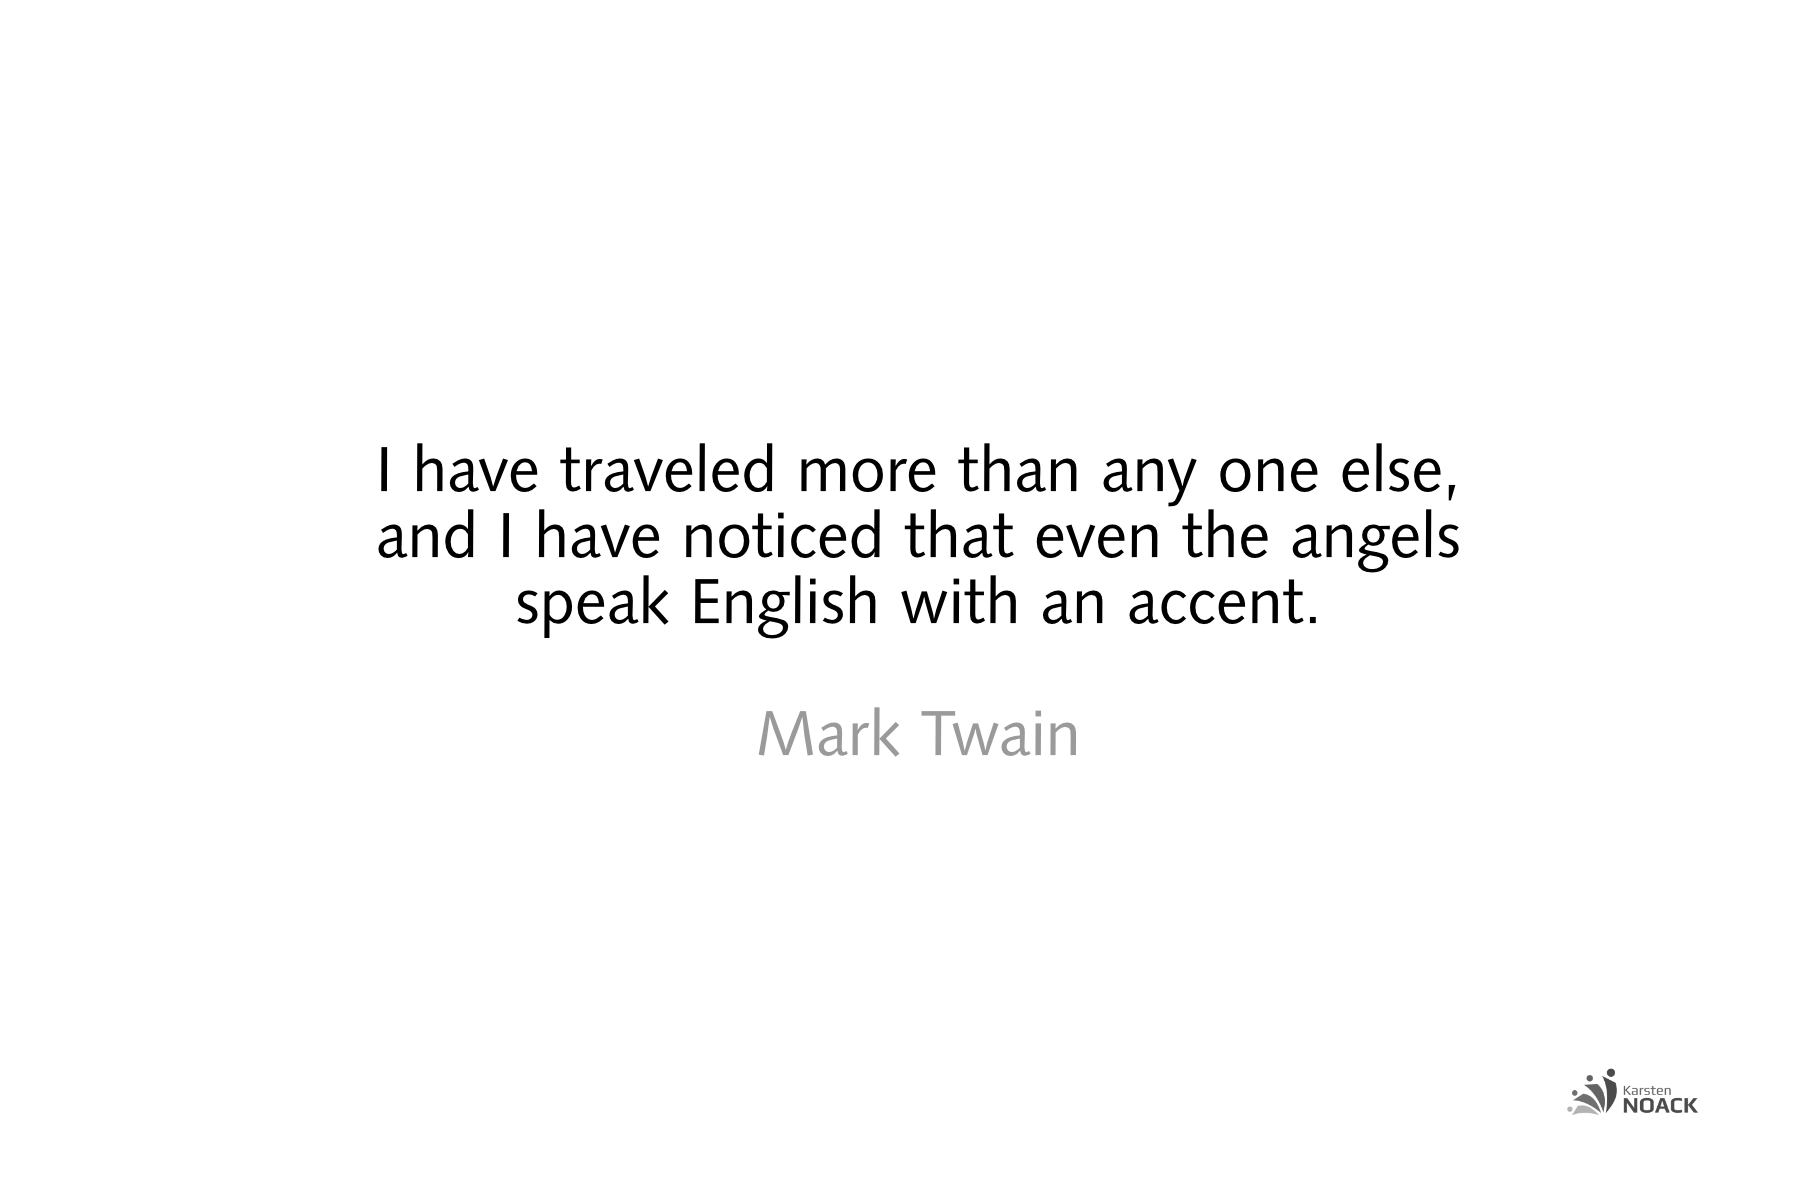 I have traveled more than any one else, and I have noticed that even the angels speak English with an accent - Mark Twain